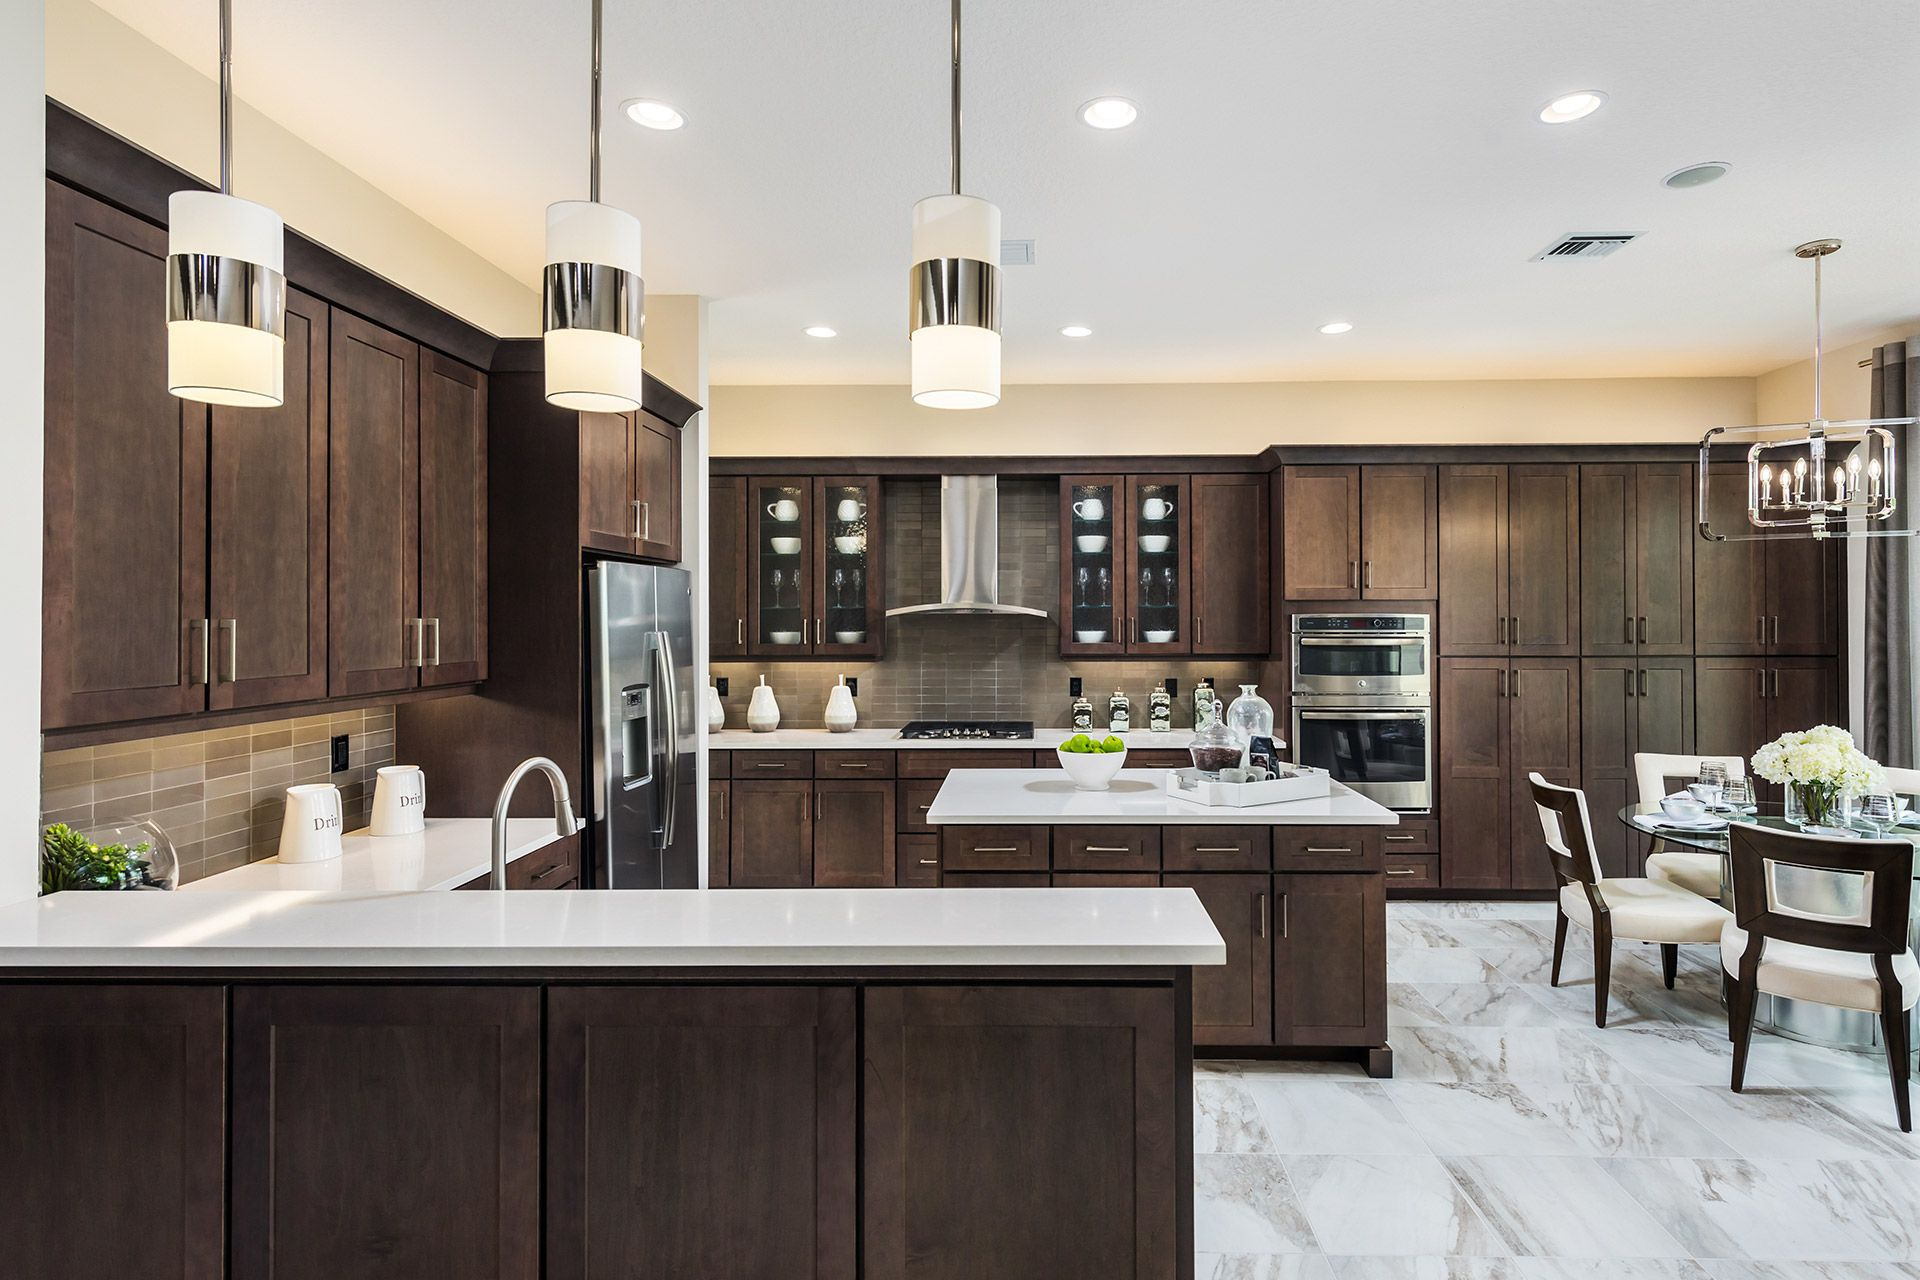 Kitchen featured in the Julia By GL Homes in Martin-St. Lucie-Okeechobee Counties, FL